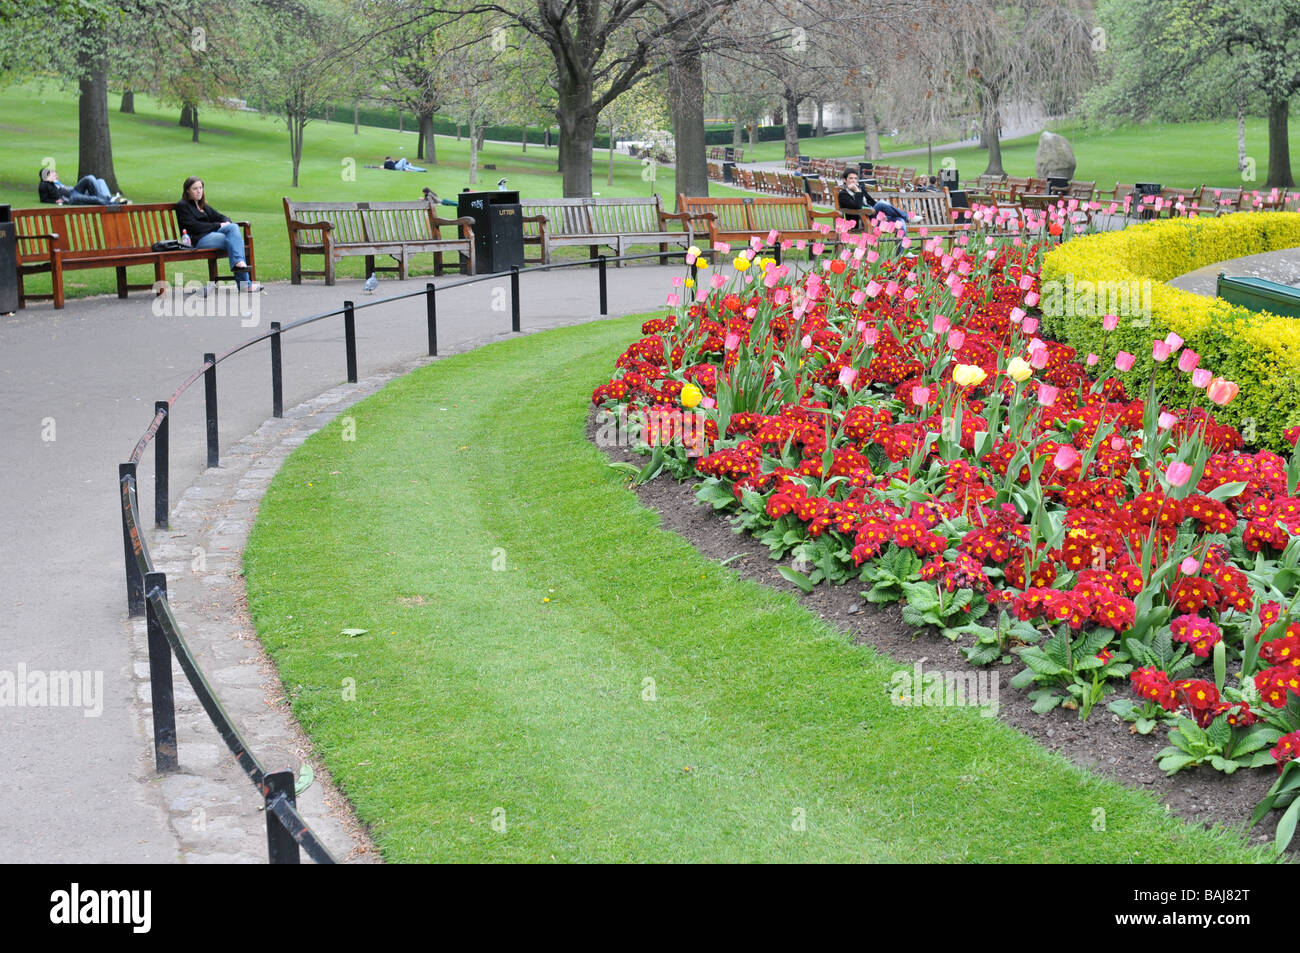 Edinburgh Flowers Stock Photos Edinburgh Flowers Stock Images Alamy